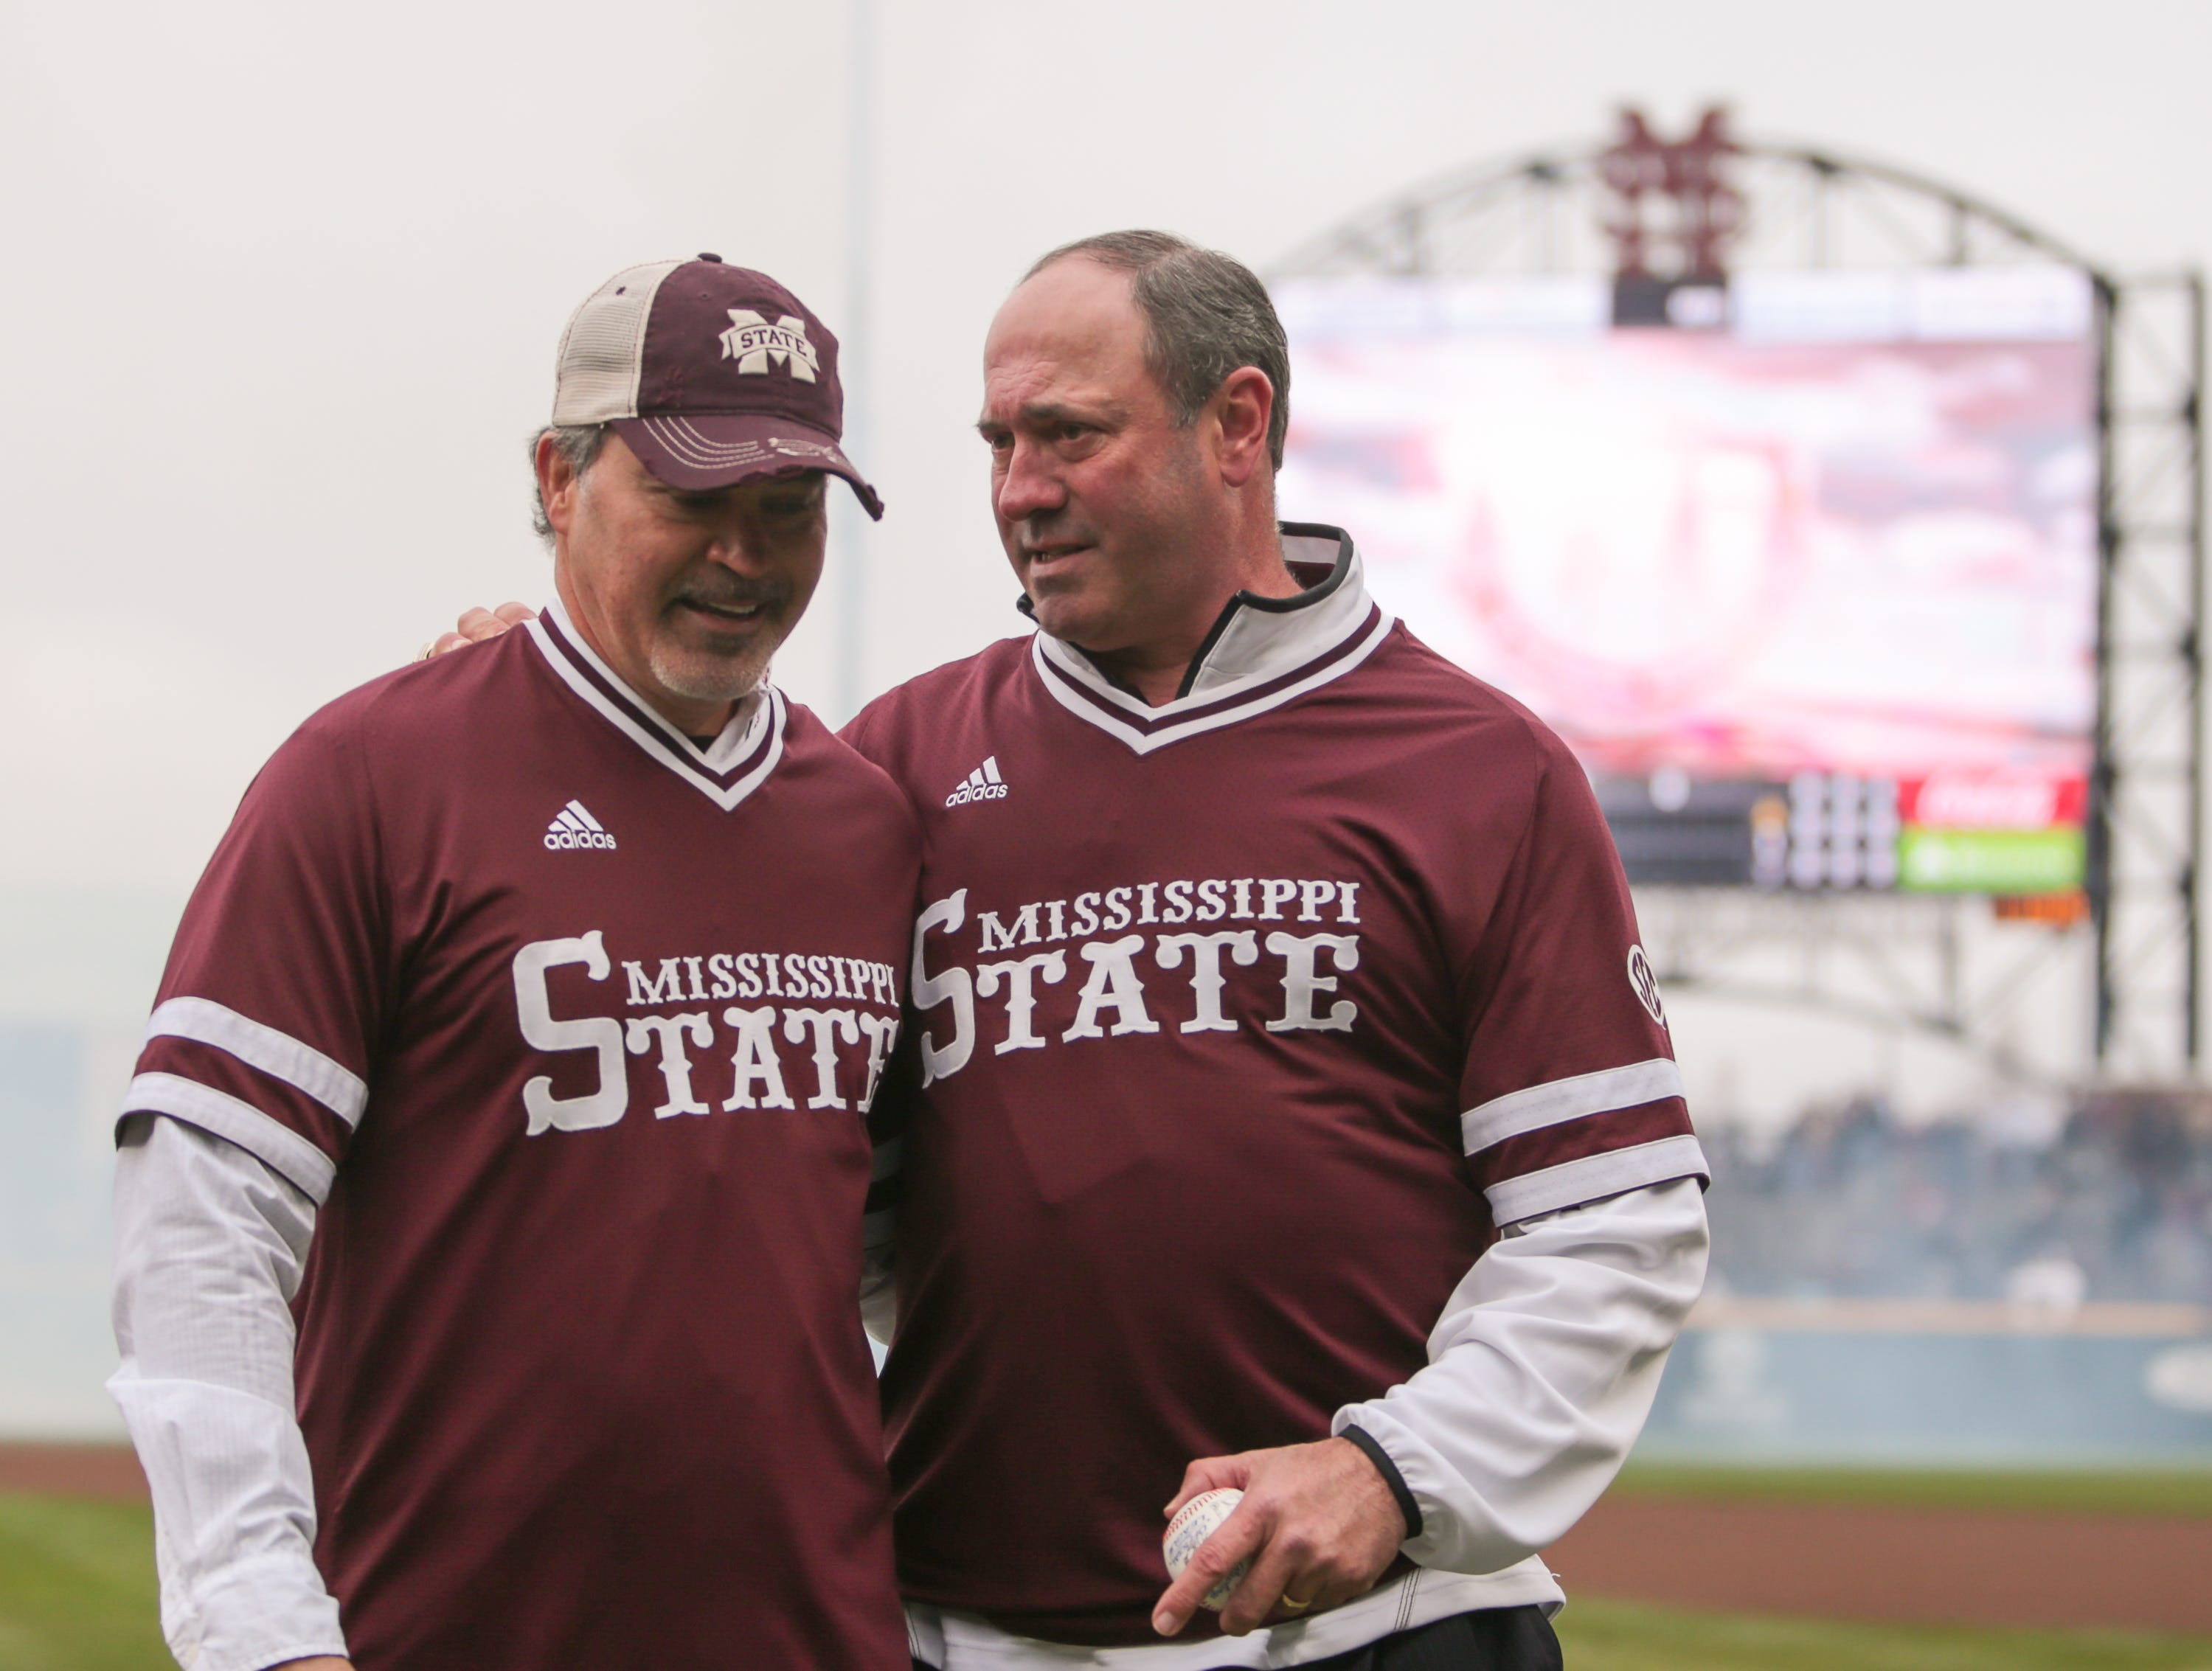 Rafael Palmeiro and Will Clark talk prior to the game. Mississippi State played Youngstown State on Saturday, February 16, 2019. Photo by Keith Warren